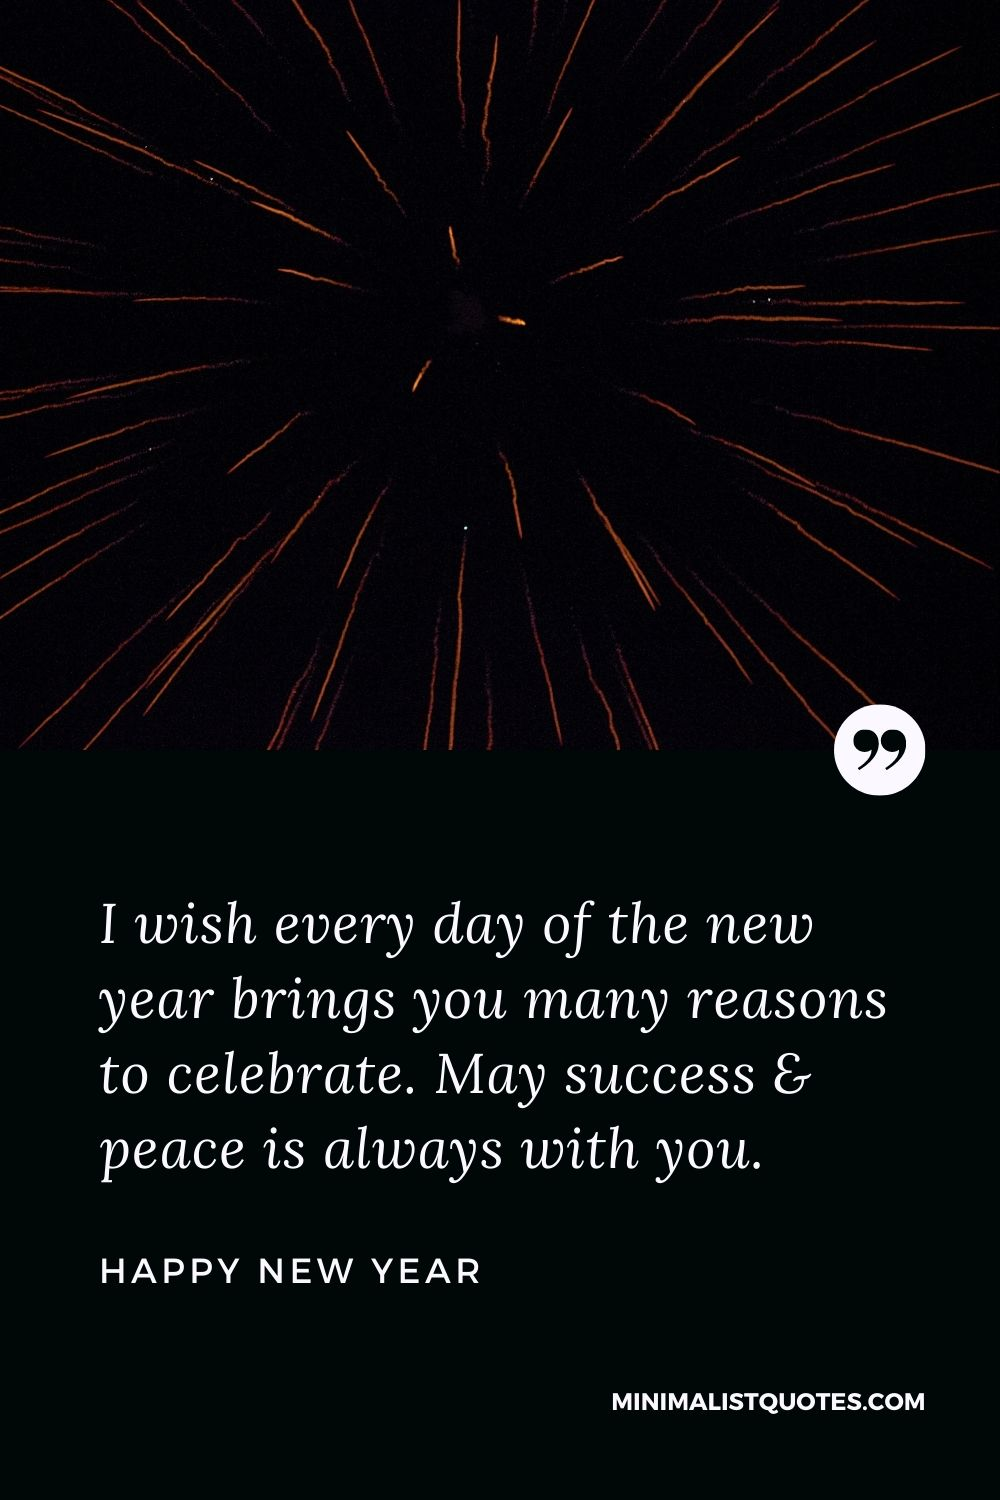 New Year Wish - I wish every day of the new year brings you many reasons to celebrate. May success & peace is always with you.